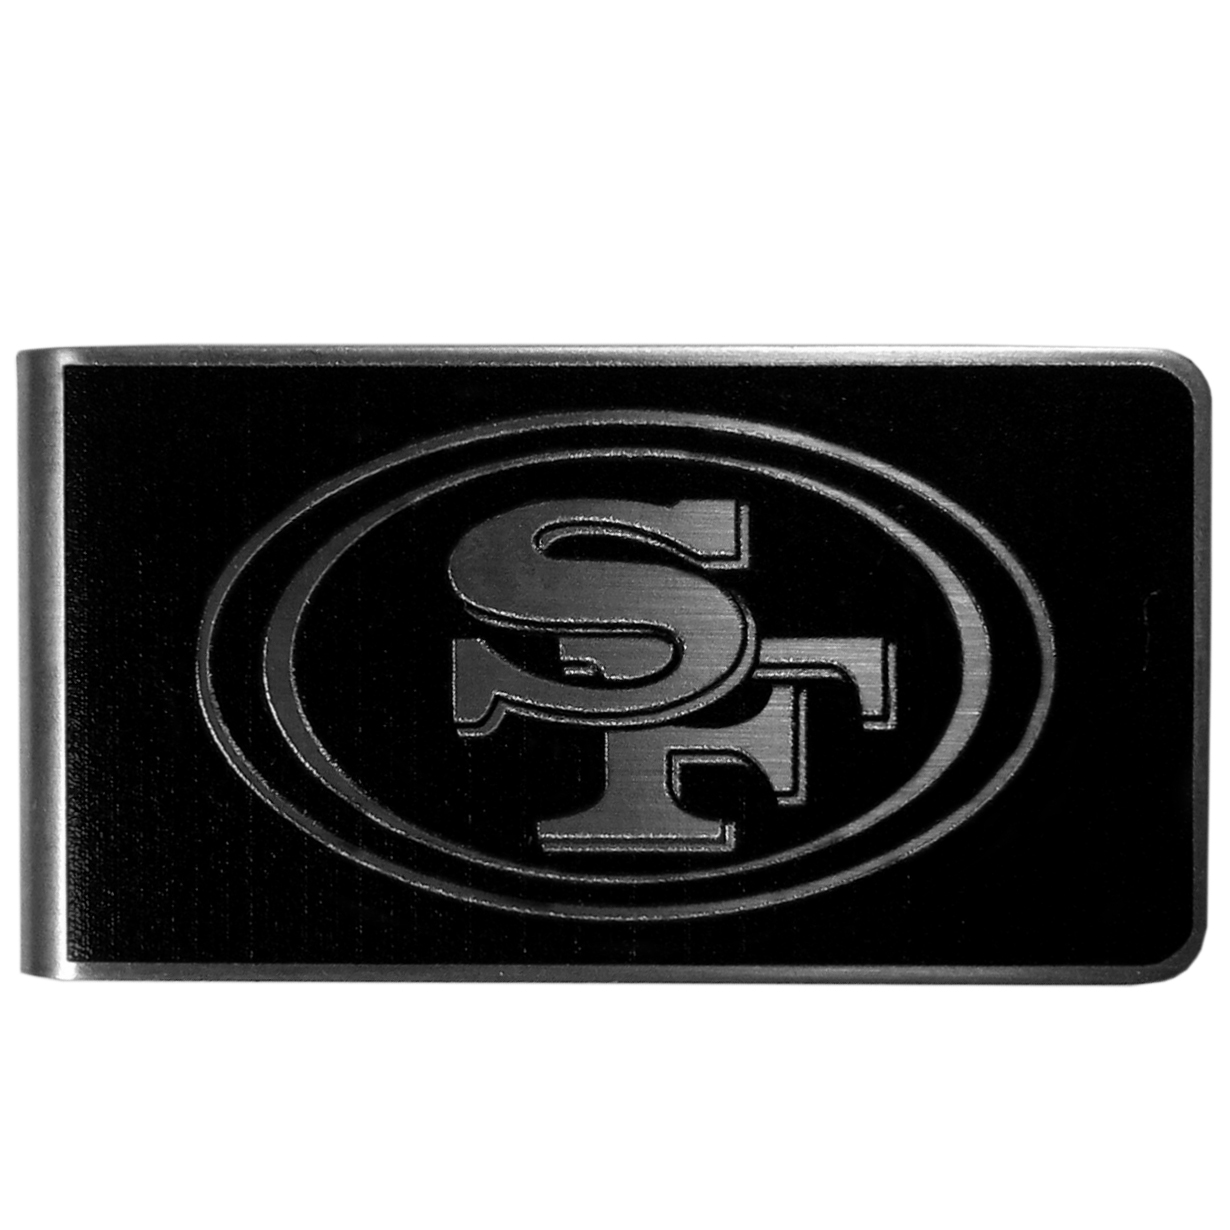 San Francisco 49ers Black and Steel Money Clip - Our monochromatic steel money clips have a classic style and superior quality. The strong, steel clip has a black overlay of the San Francisco 49ers logo over the brushed metal finish creating a stylish men's fashion accessory that would make any fan proud.